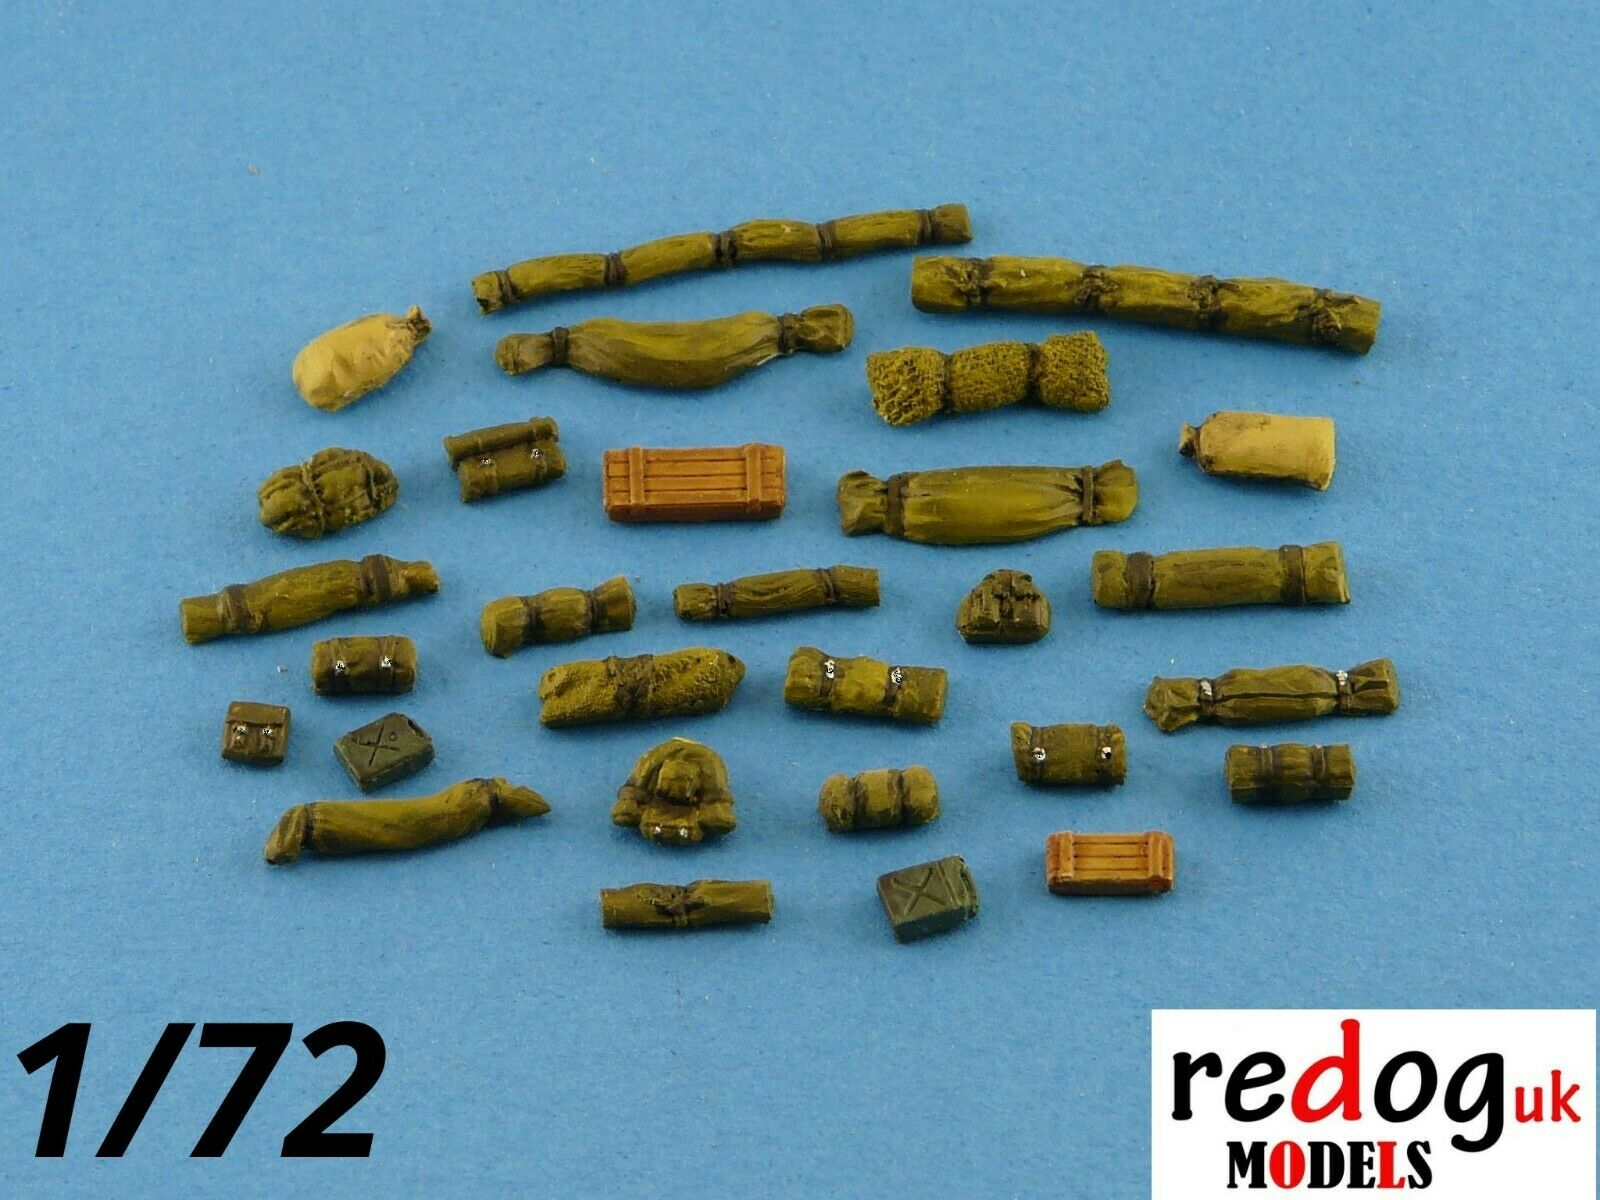 1:72 Military Scale Model Stowage Diorama Accessories Kit 1 - redoguk